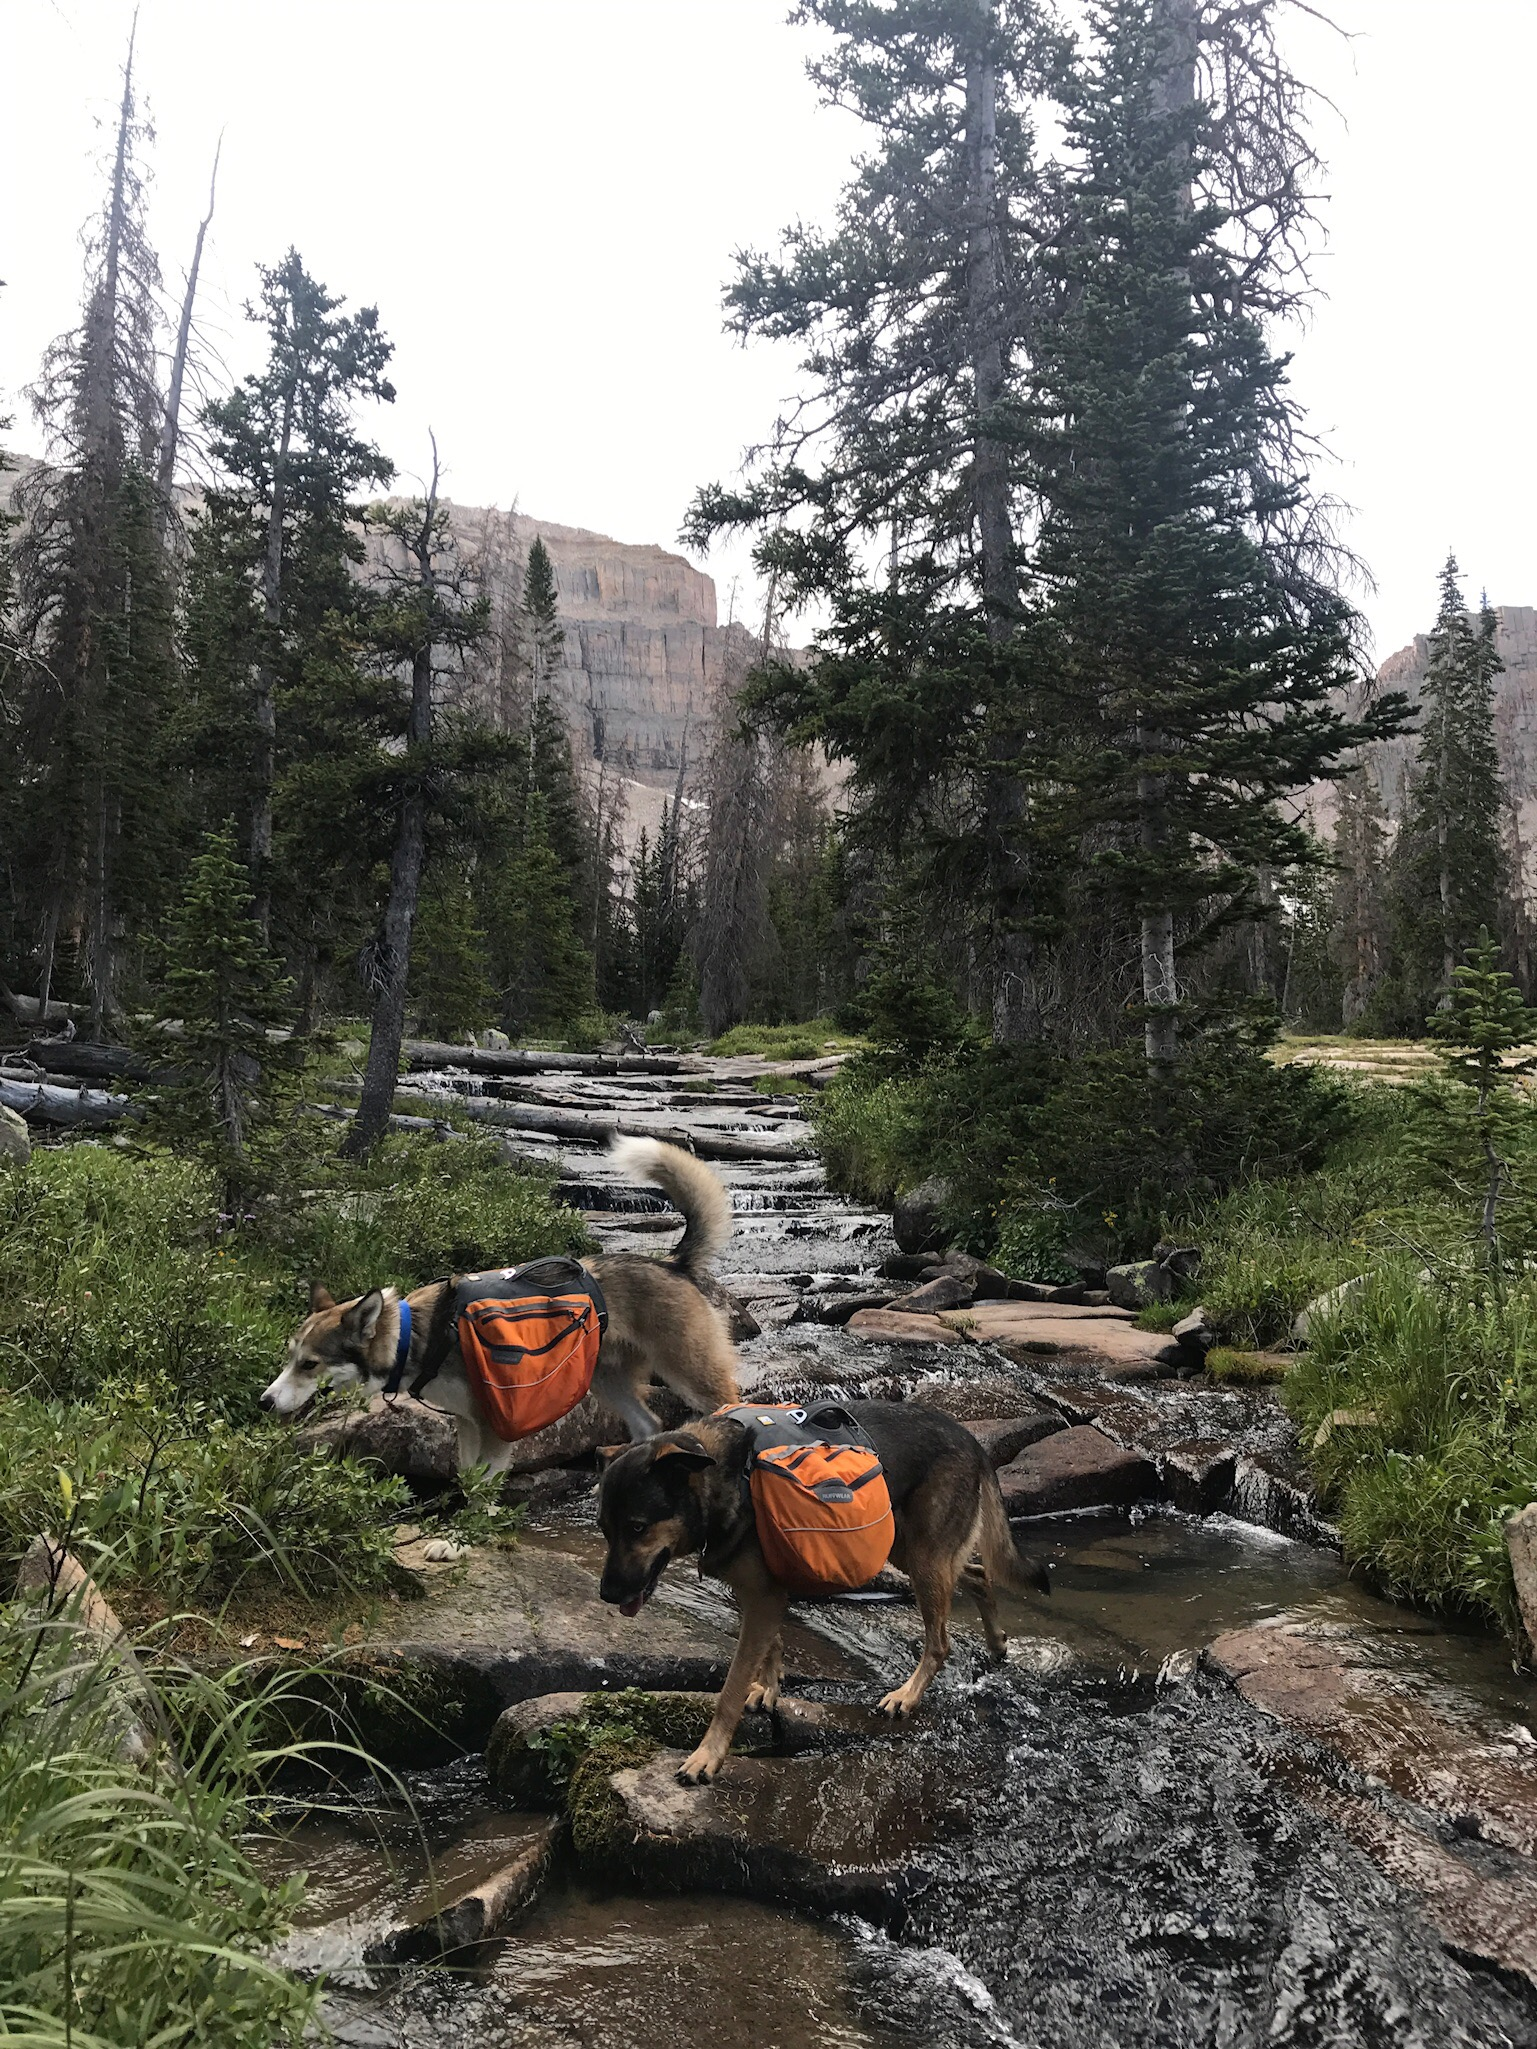 Couple o' backpacking mutts in the High Uintas.